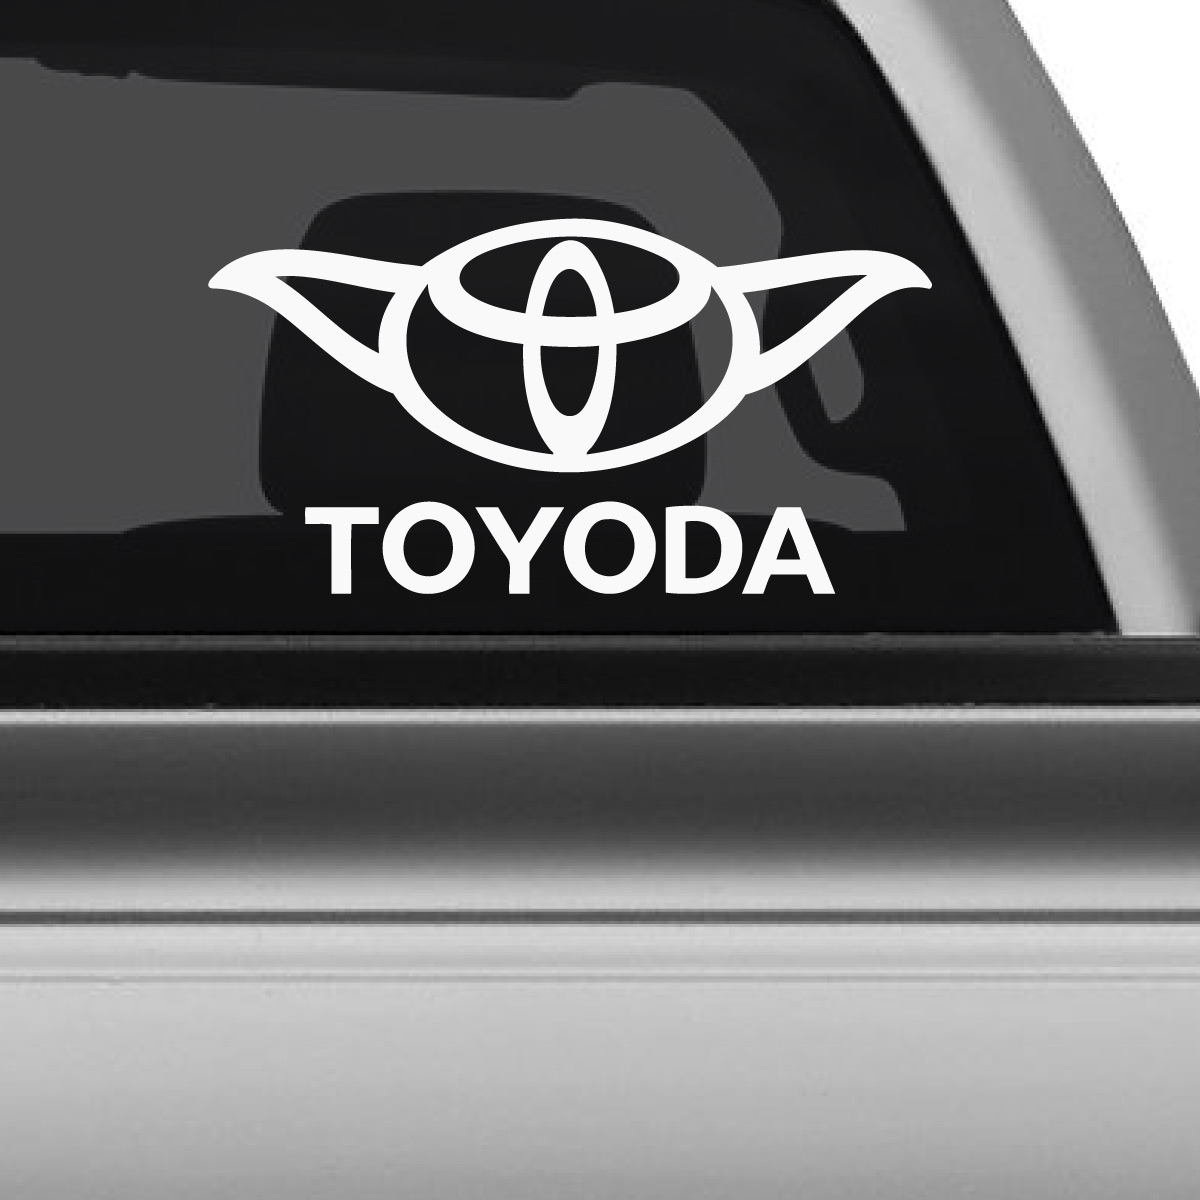 Toyota Yoda Star Wars Car Decal The Decal Guru - Star wars car decals